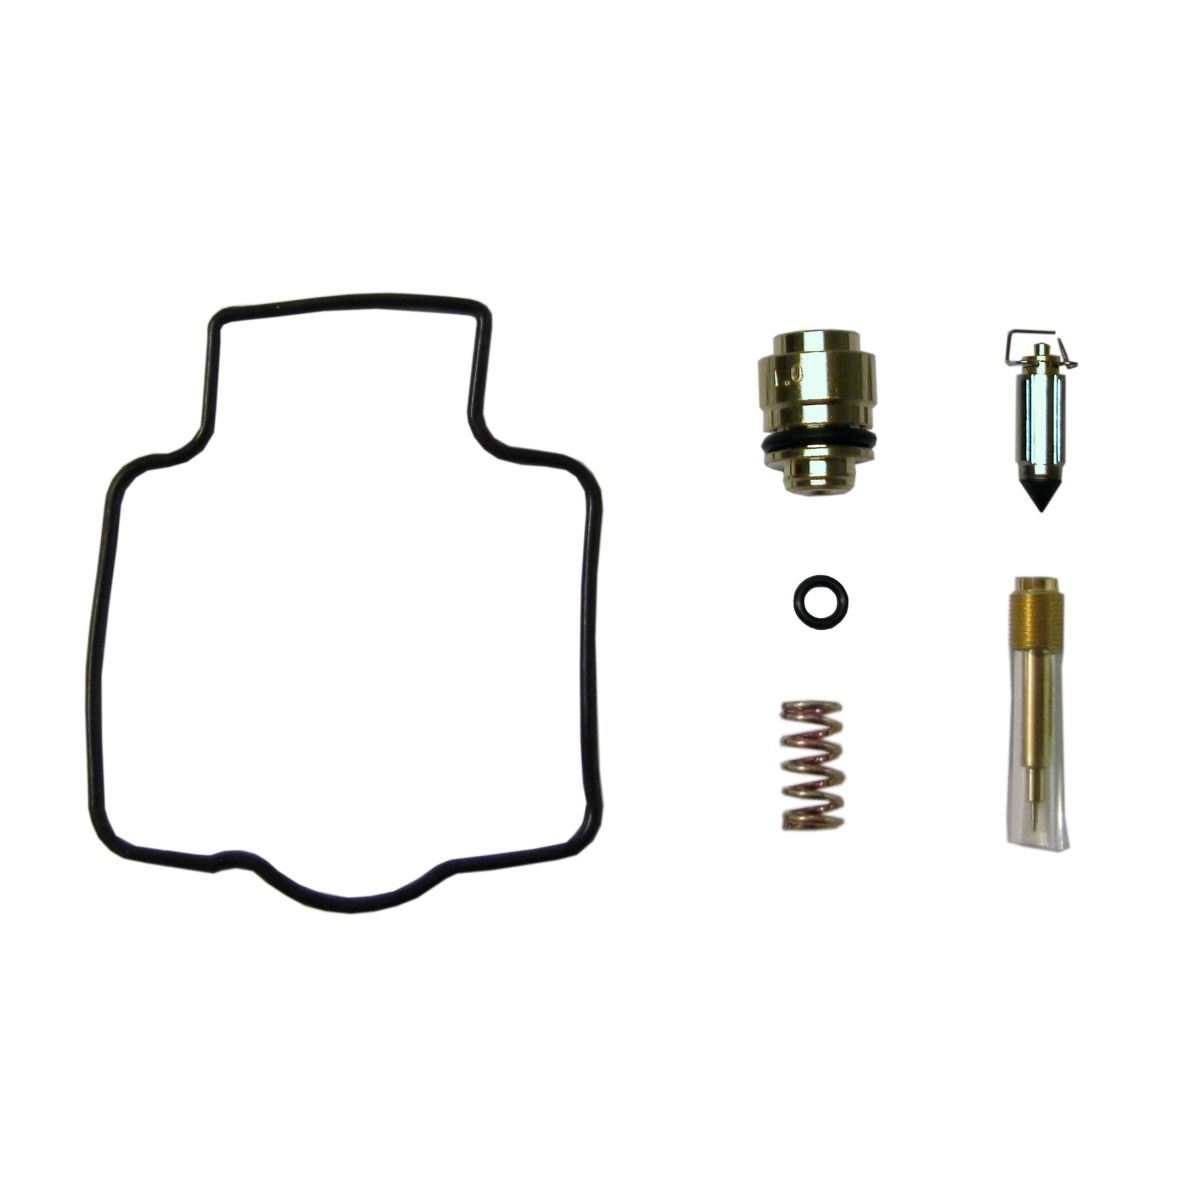 Carb Repair Kit for 1995 Yamaha FZR 600 R (4JH4) (UK Model